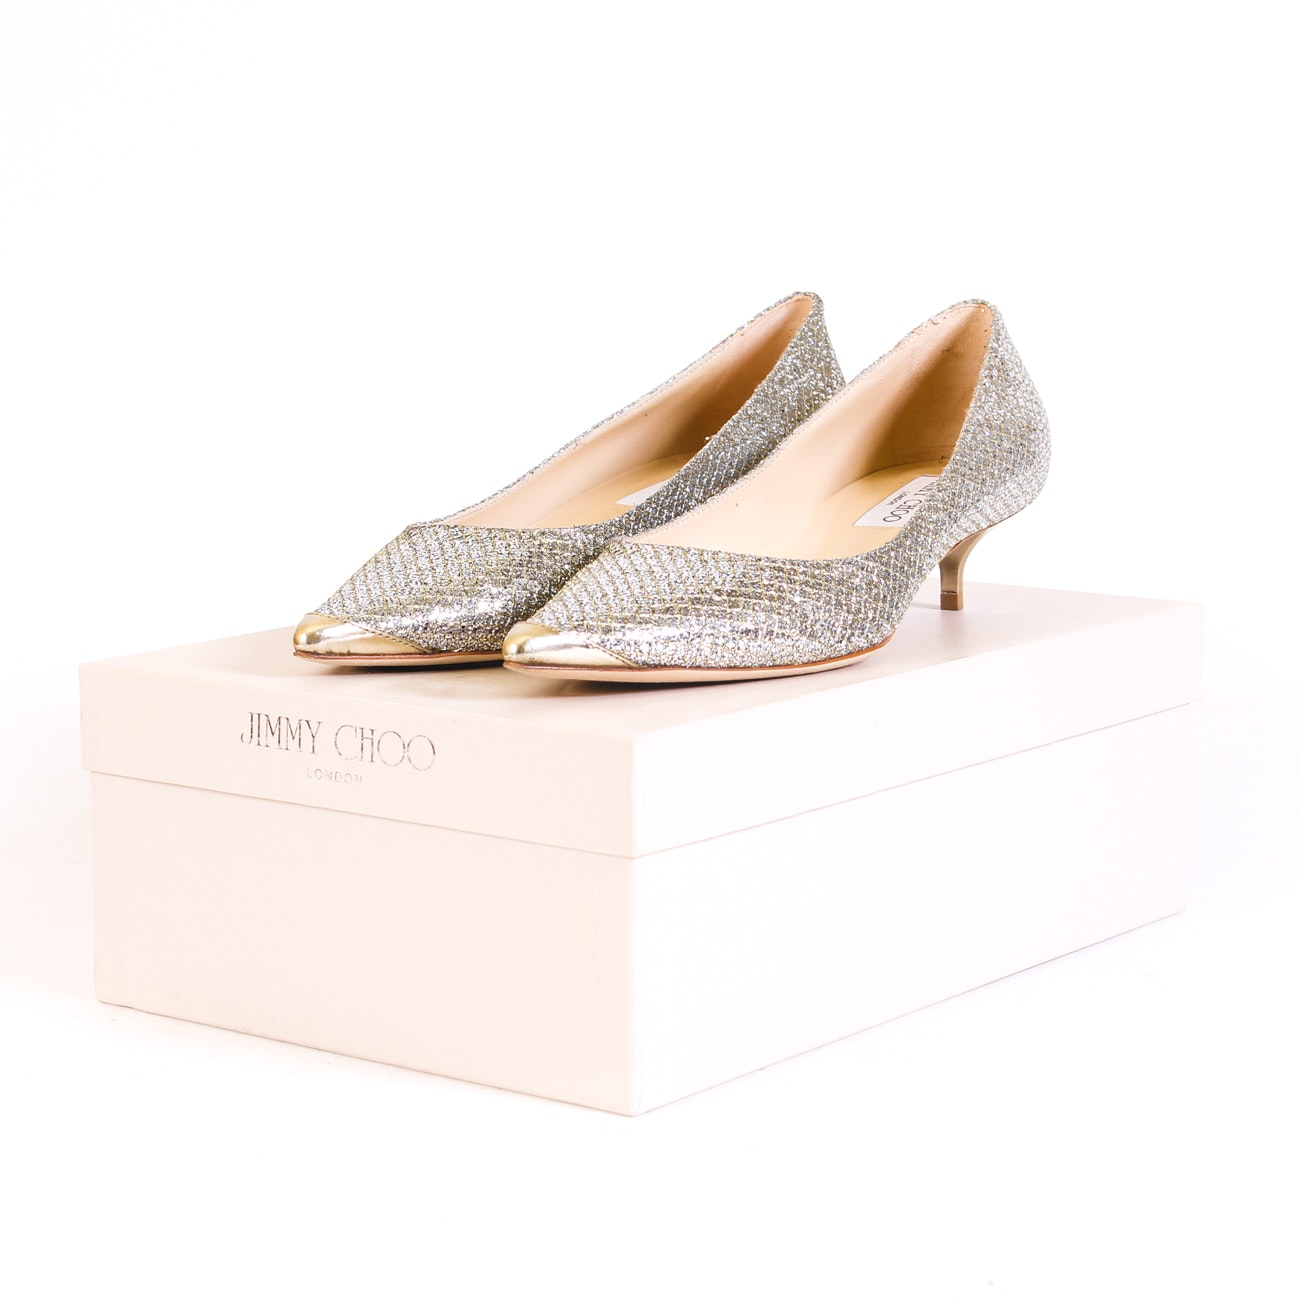 Jimmy Choo Metallic Fabric Champagne Pumps